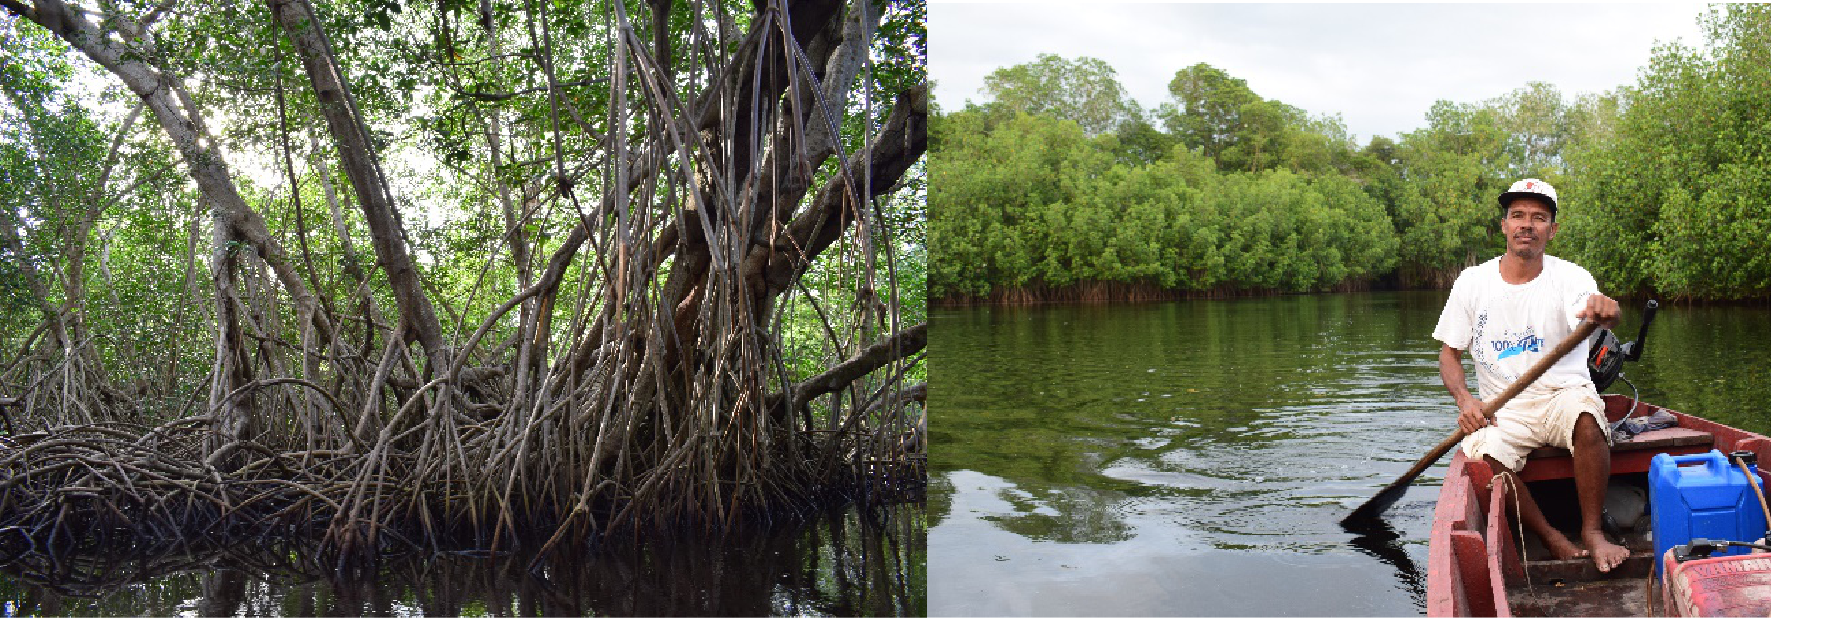 Community-managed mangrove conservation, an EbA measure in coastal areas / Photo: Marai El Fassi, TMG Research